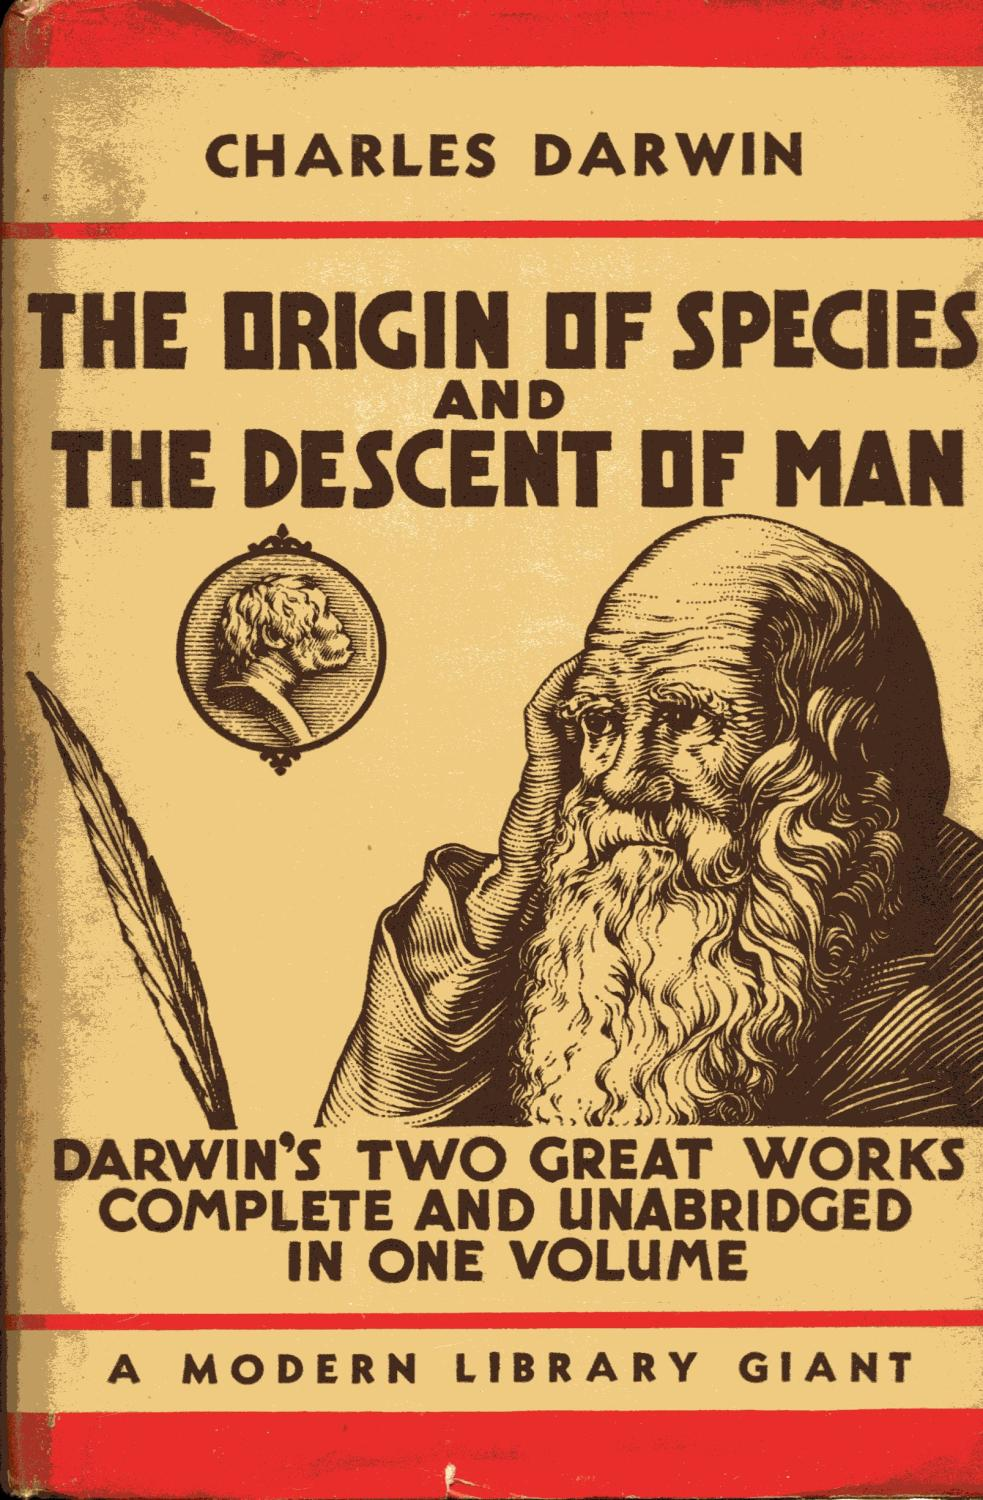 an analysis of darwins origin of species and descent of man Summary and analysis of charles darwin's on the origin of species in this video, we will explore charles darwin's seminal work on evolution titled, on the.